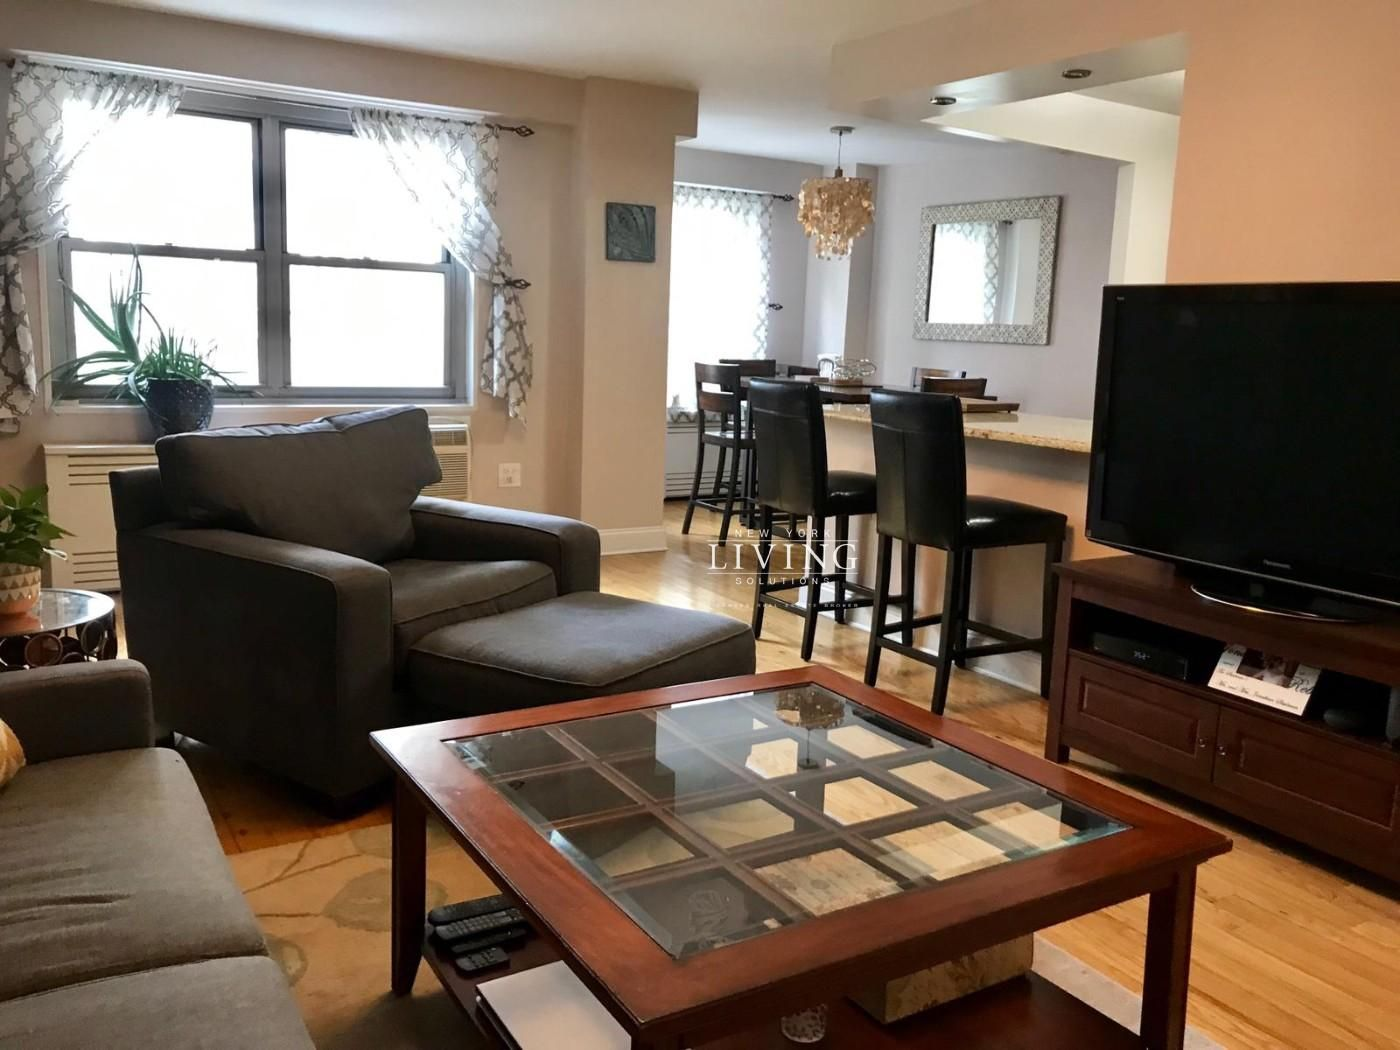 1 Bedroom 1 Bathroom Apartment for Sale in Upper West Side